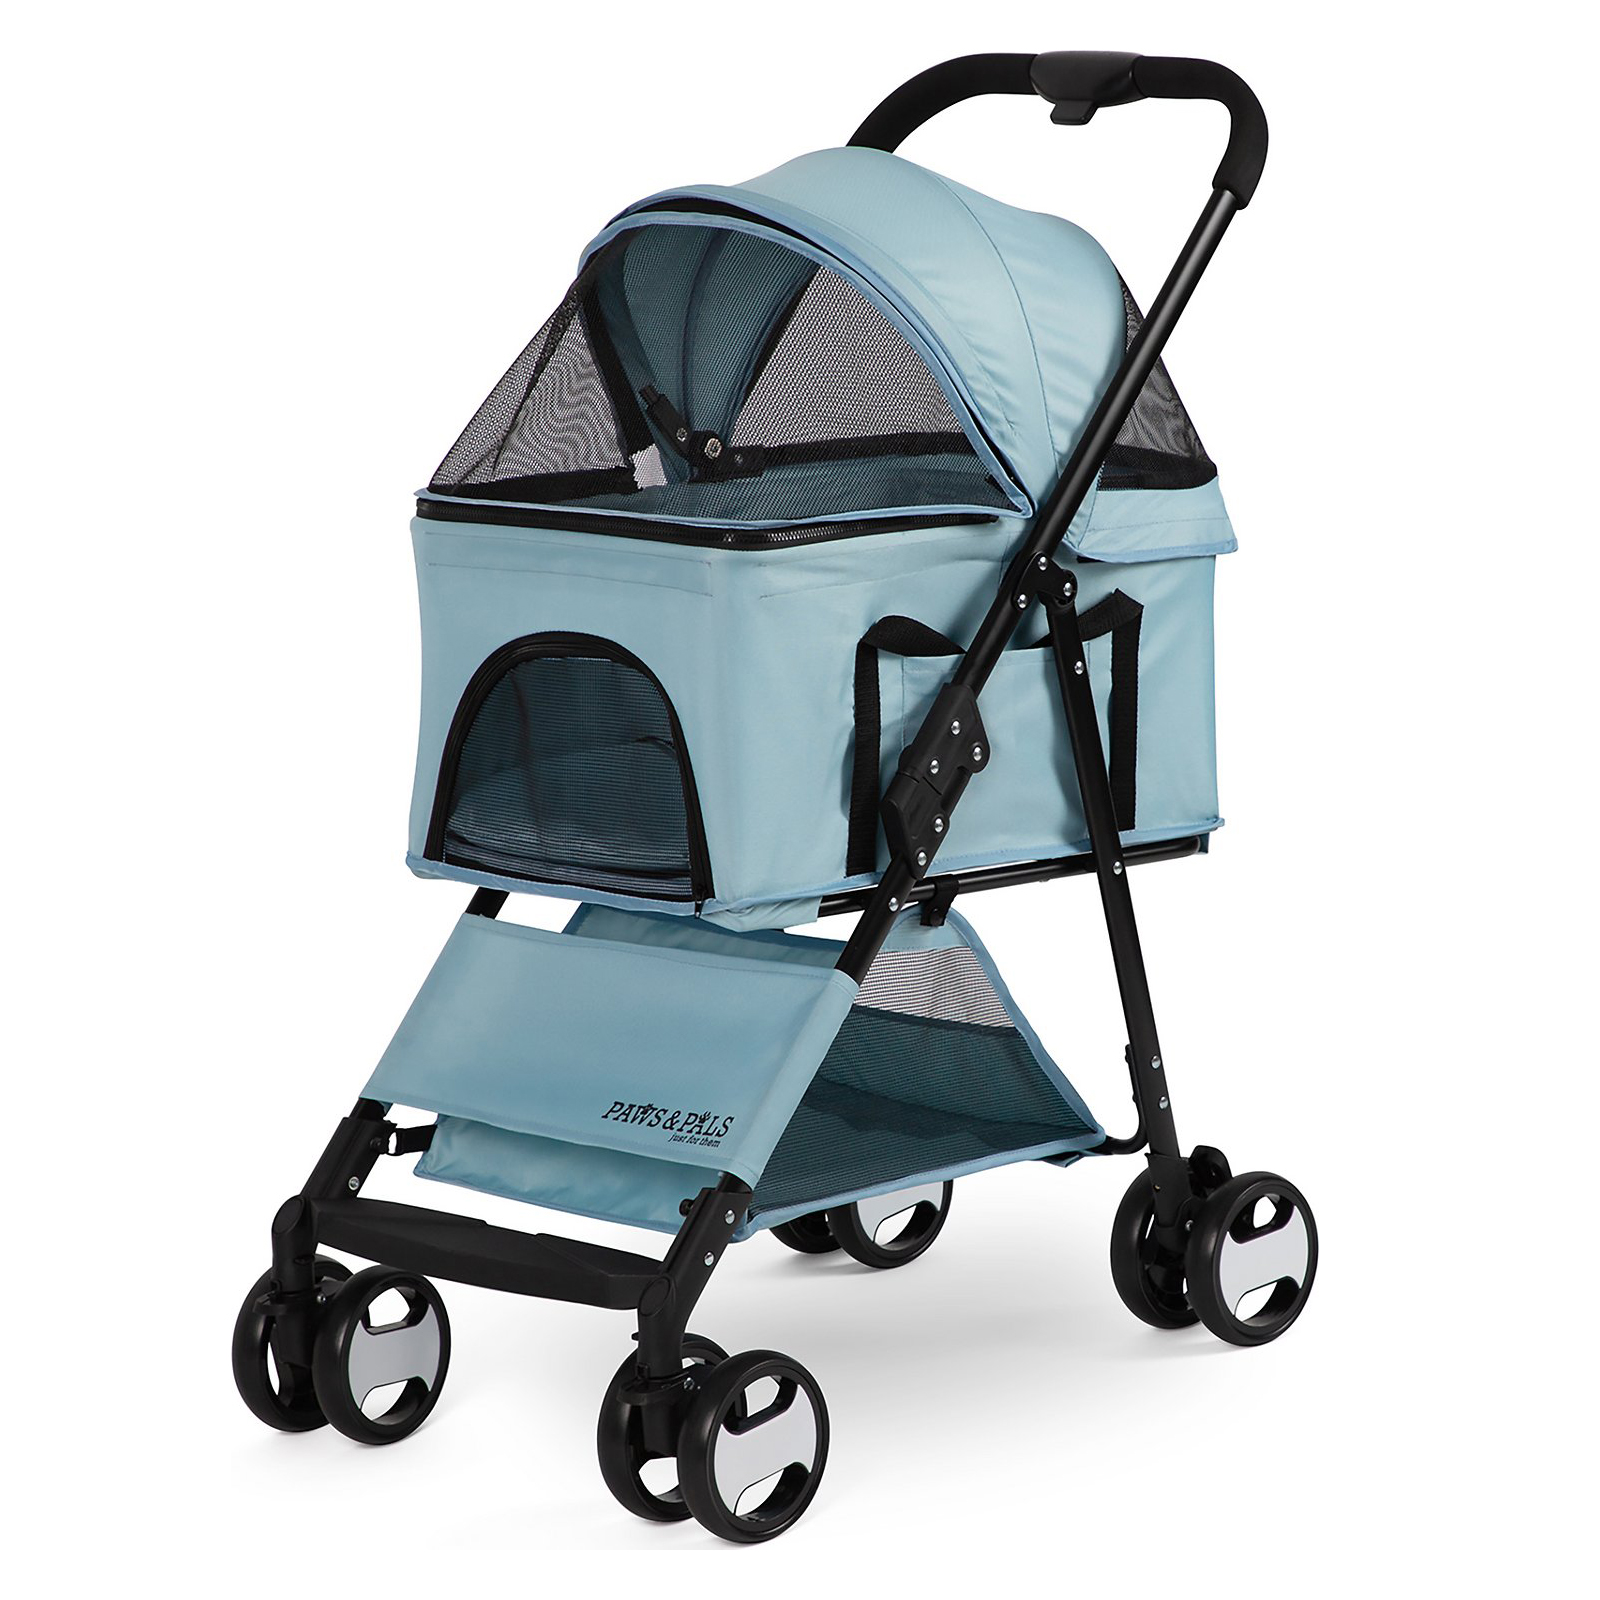 paws-and-pals-2-in-1-detachable-cat-stroller-and-carrier